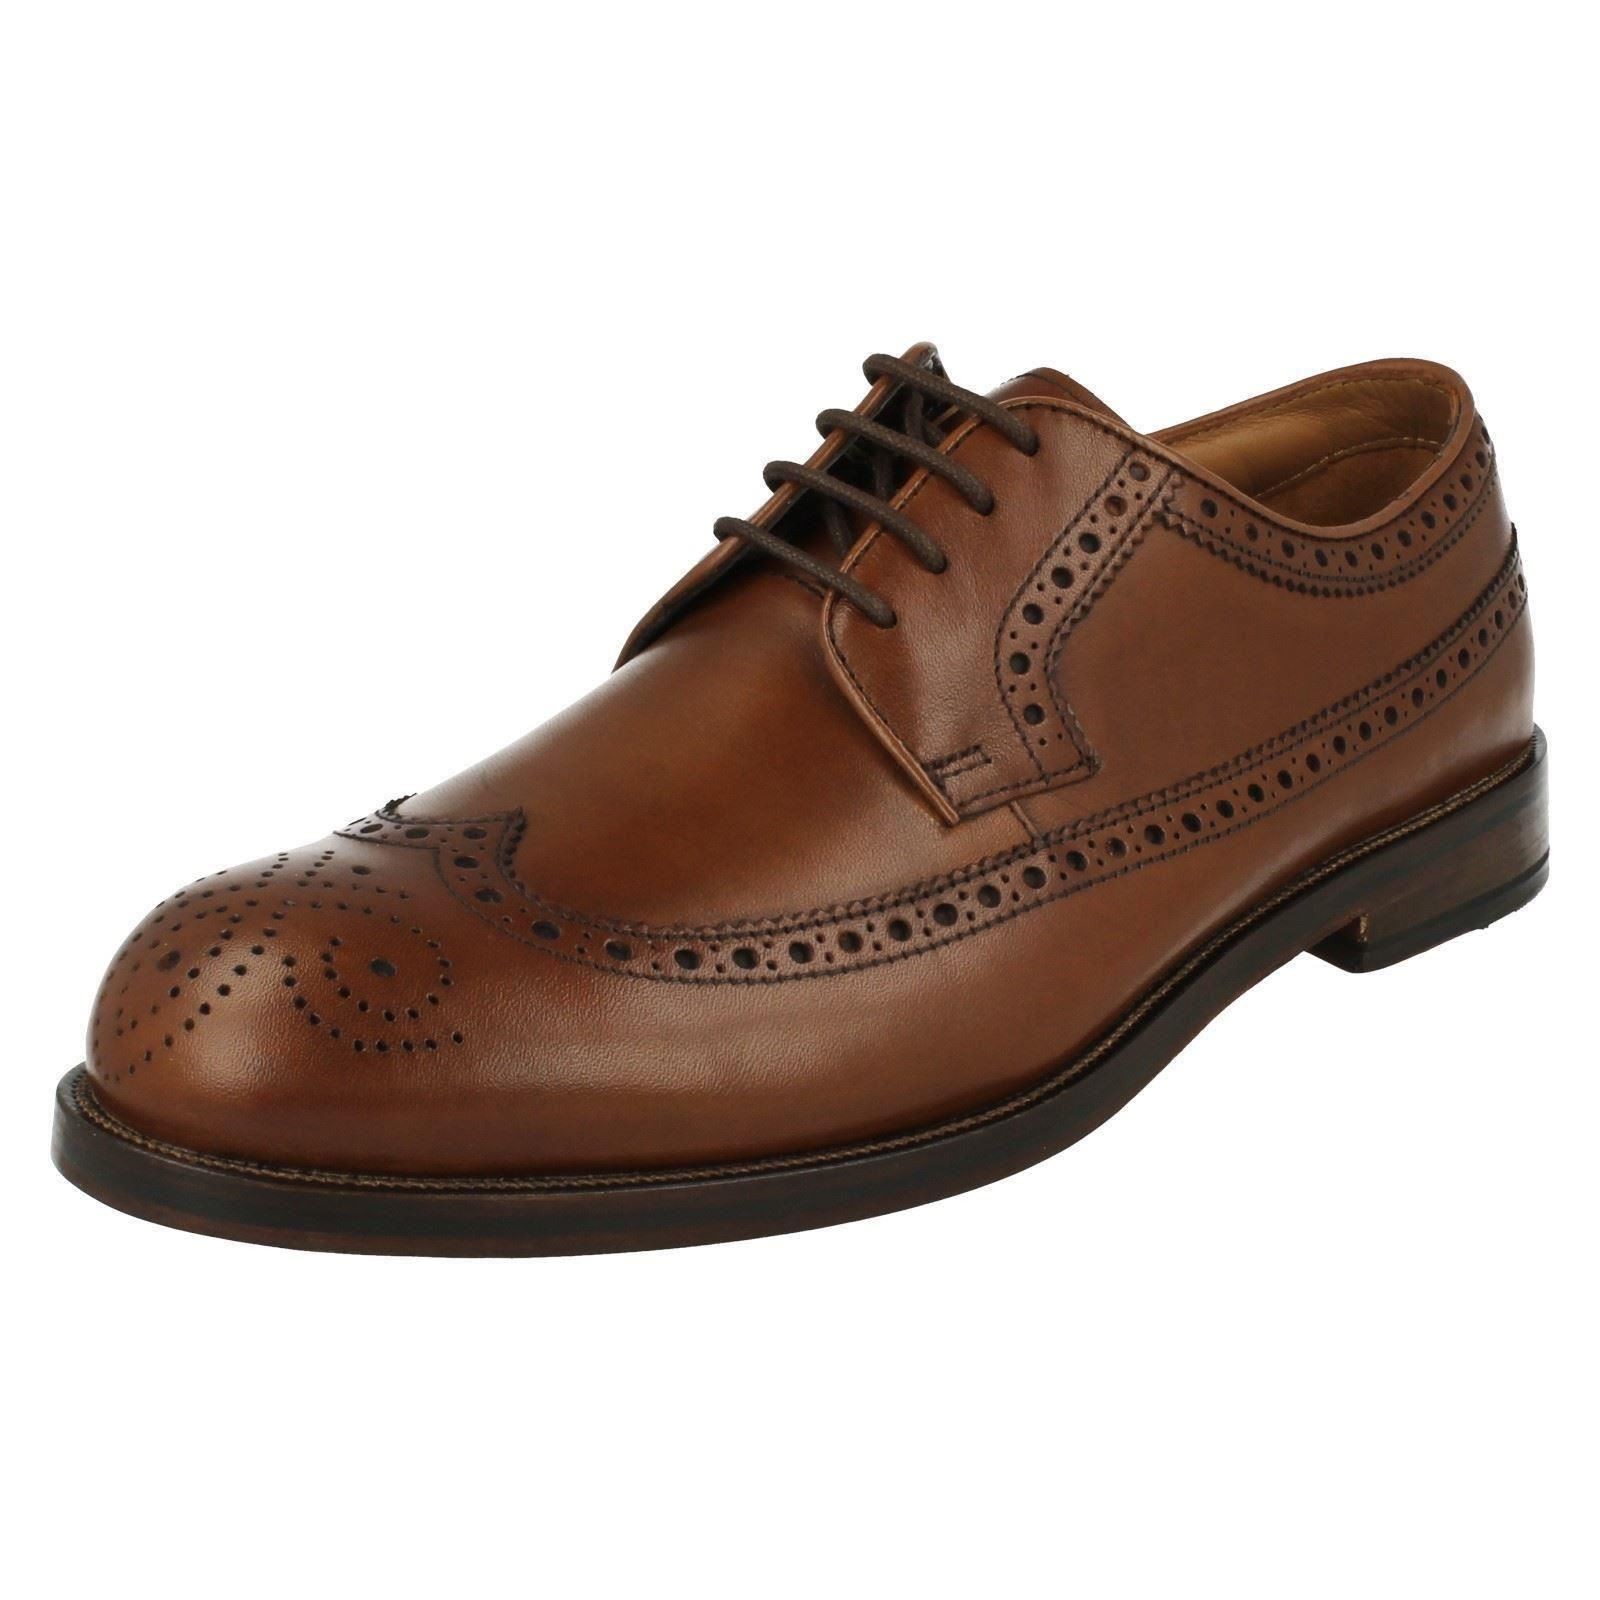 86607242fd Mens Clarks Formal Brogue Style Lace up Shoes Coling Limit Tan UK 12 ...